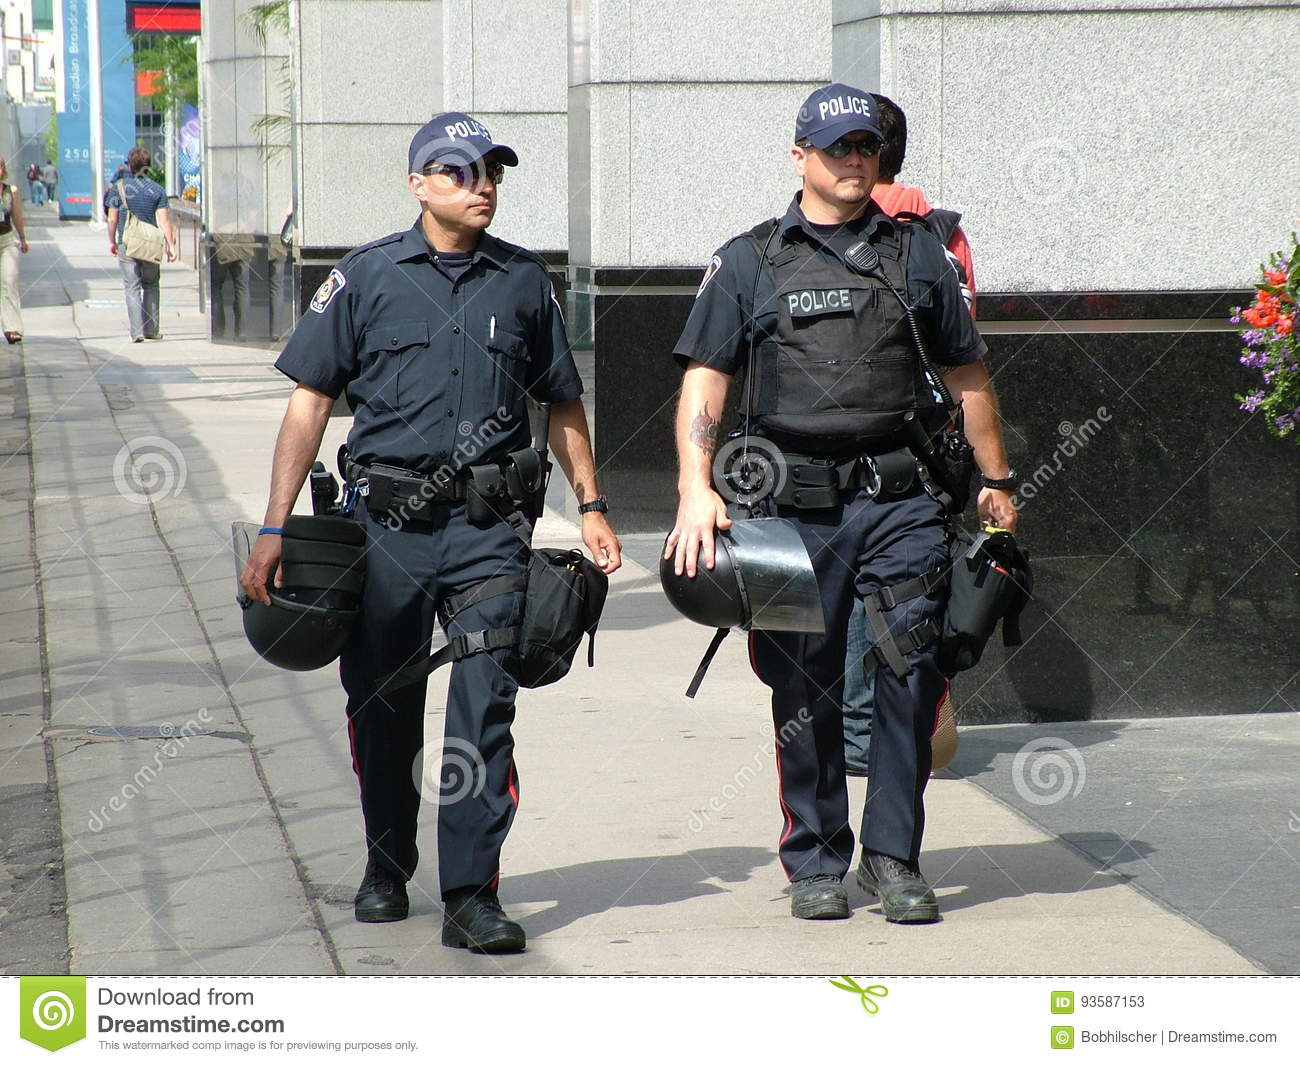 TORONTO - JUNE 23, 2010 - Police officers with riot gear on the street prior to the G20 Summit in Toronto, Ontario.